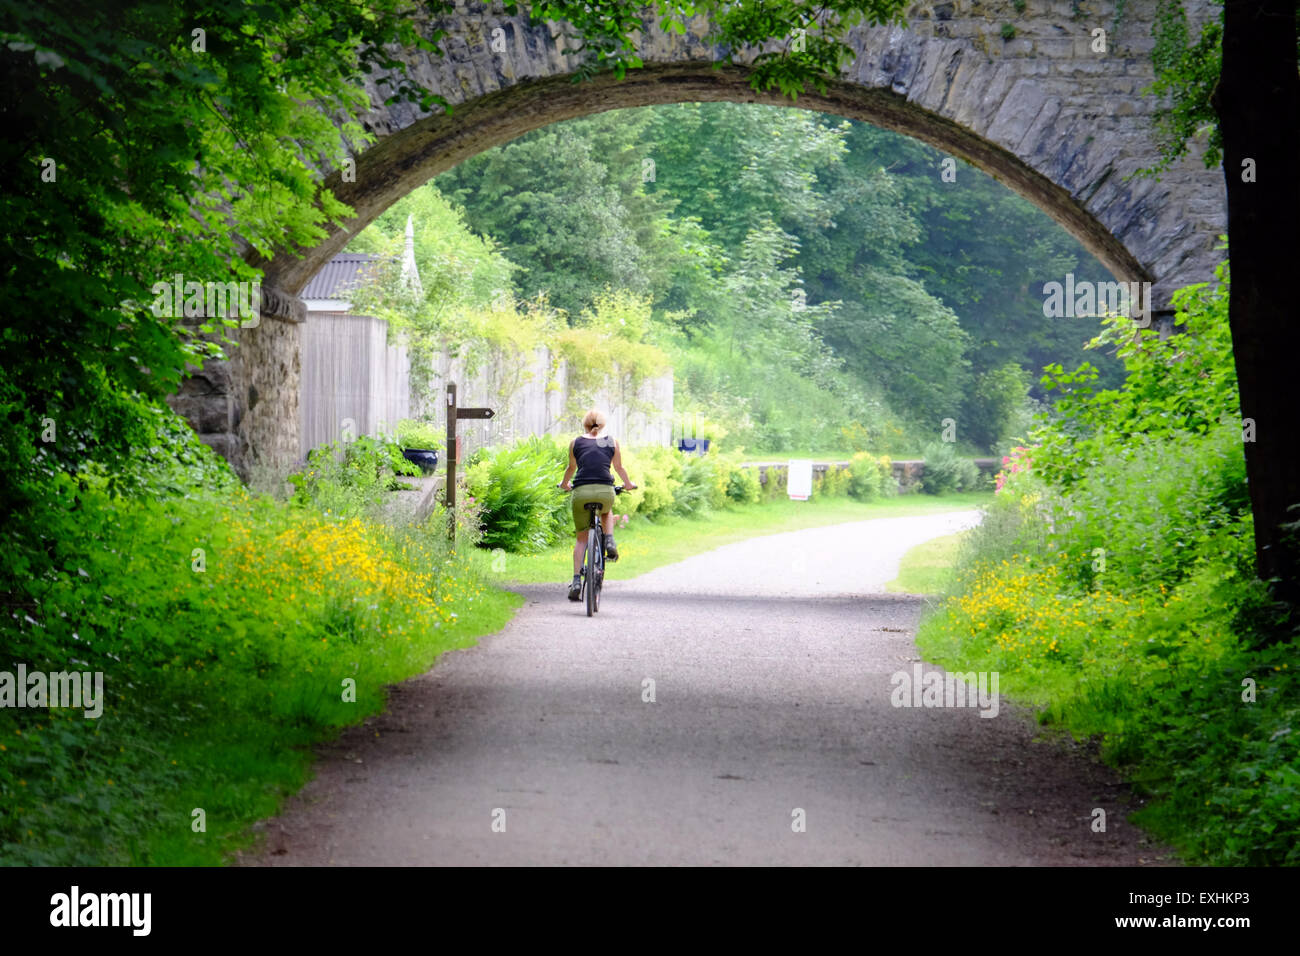 Female cyclist at Hassop on the Monsal Trail cycling route between Buxton and Bakewell in the Peak District, UK - Stock Image